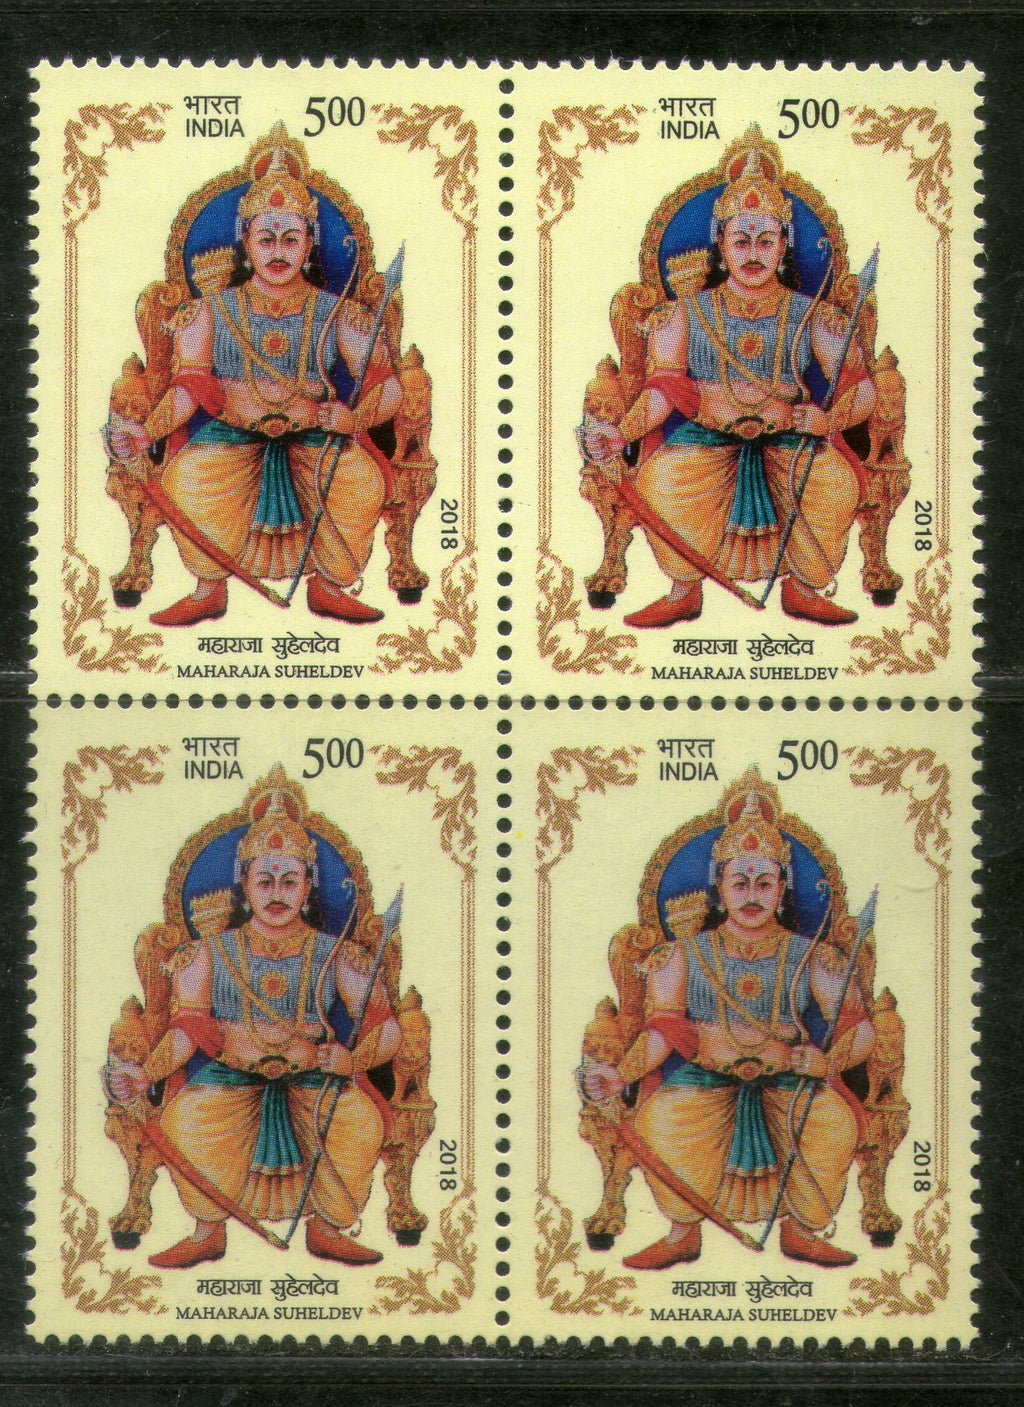 India 2018 Maharaja Suheldev King BLK/4 MNH